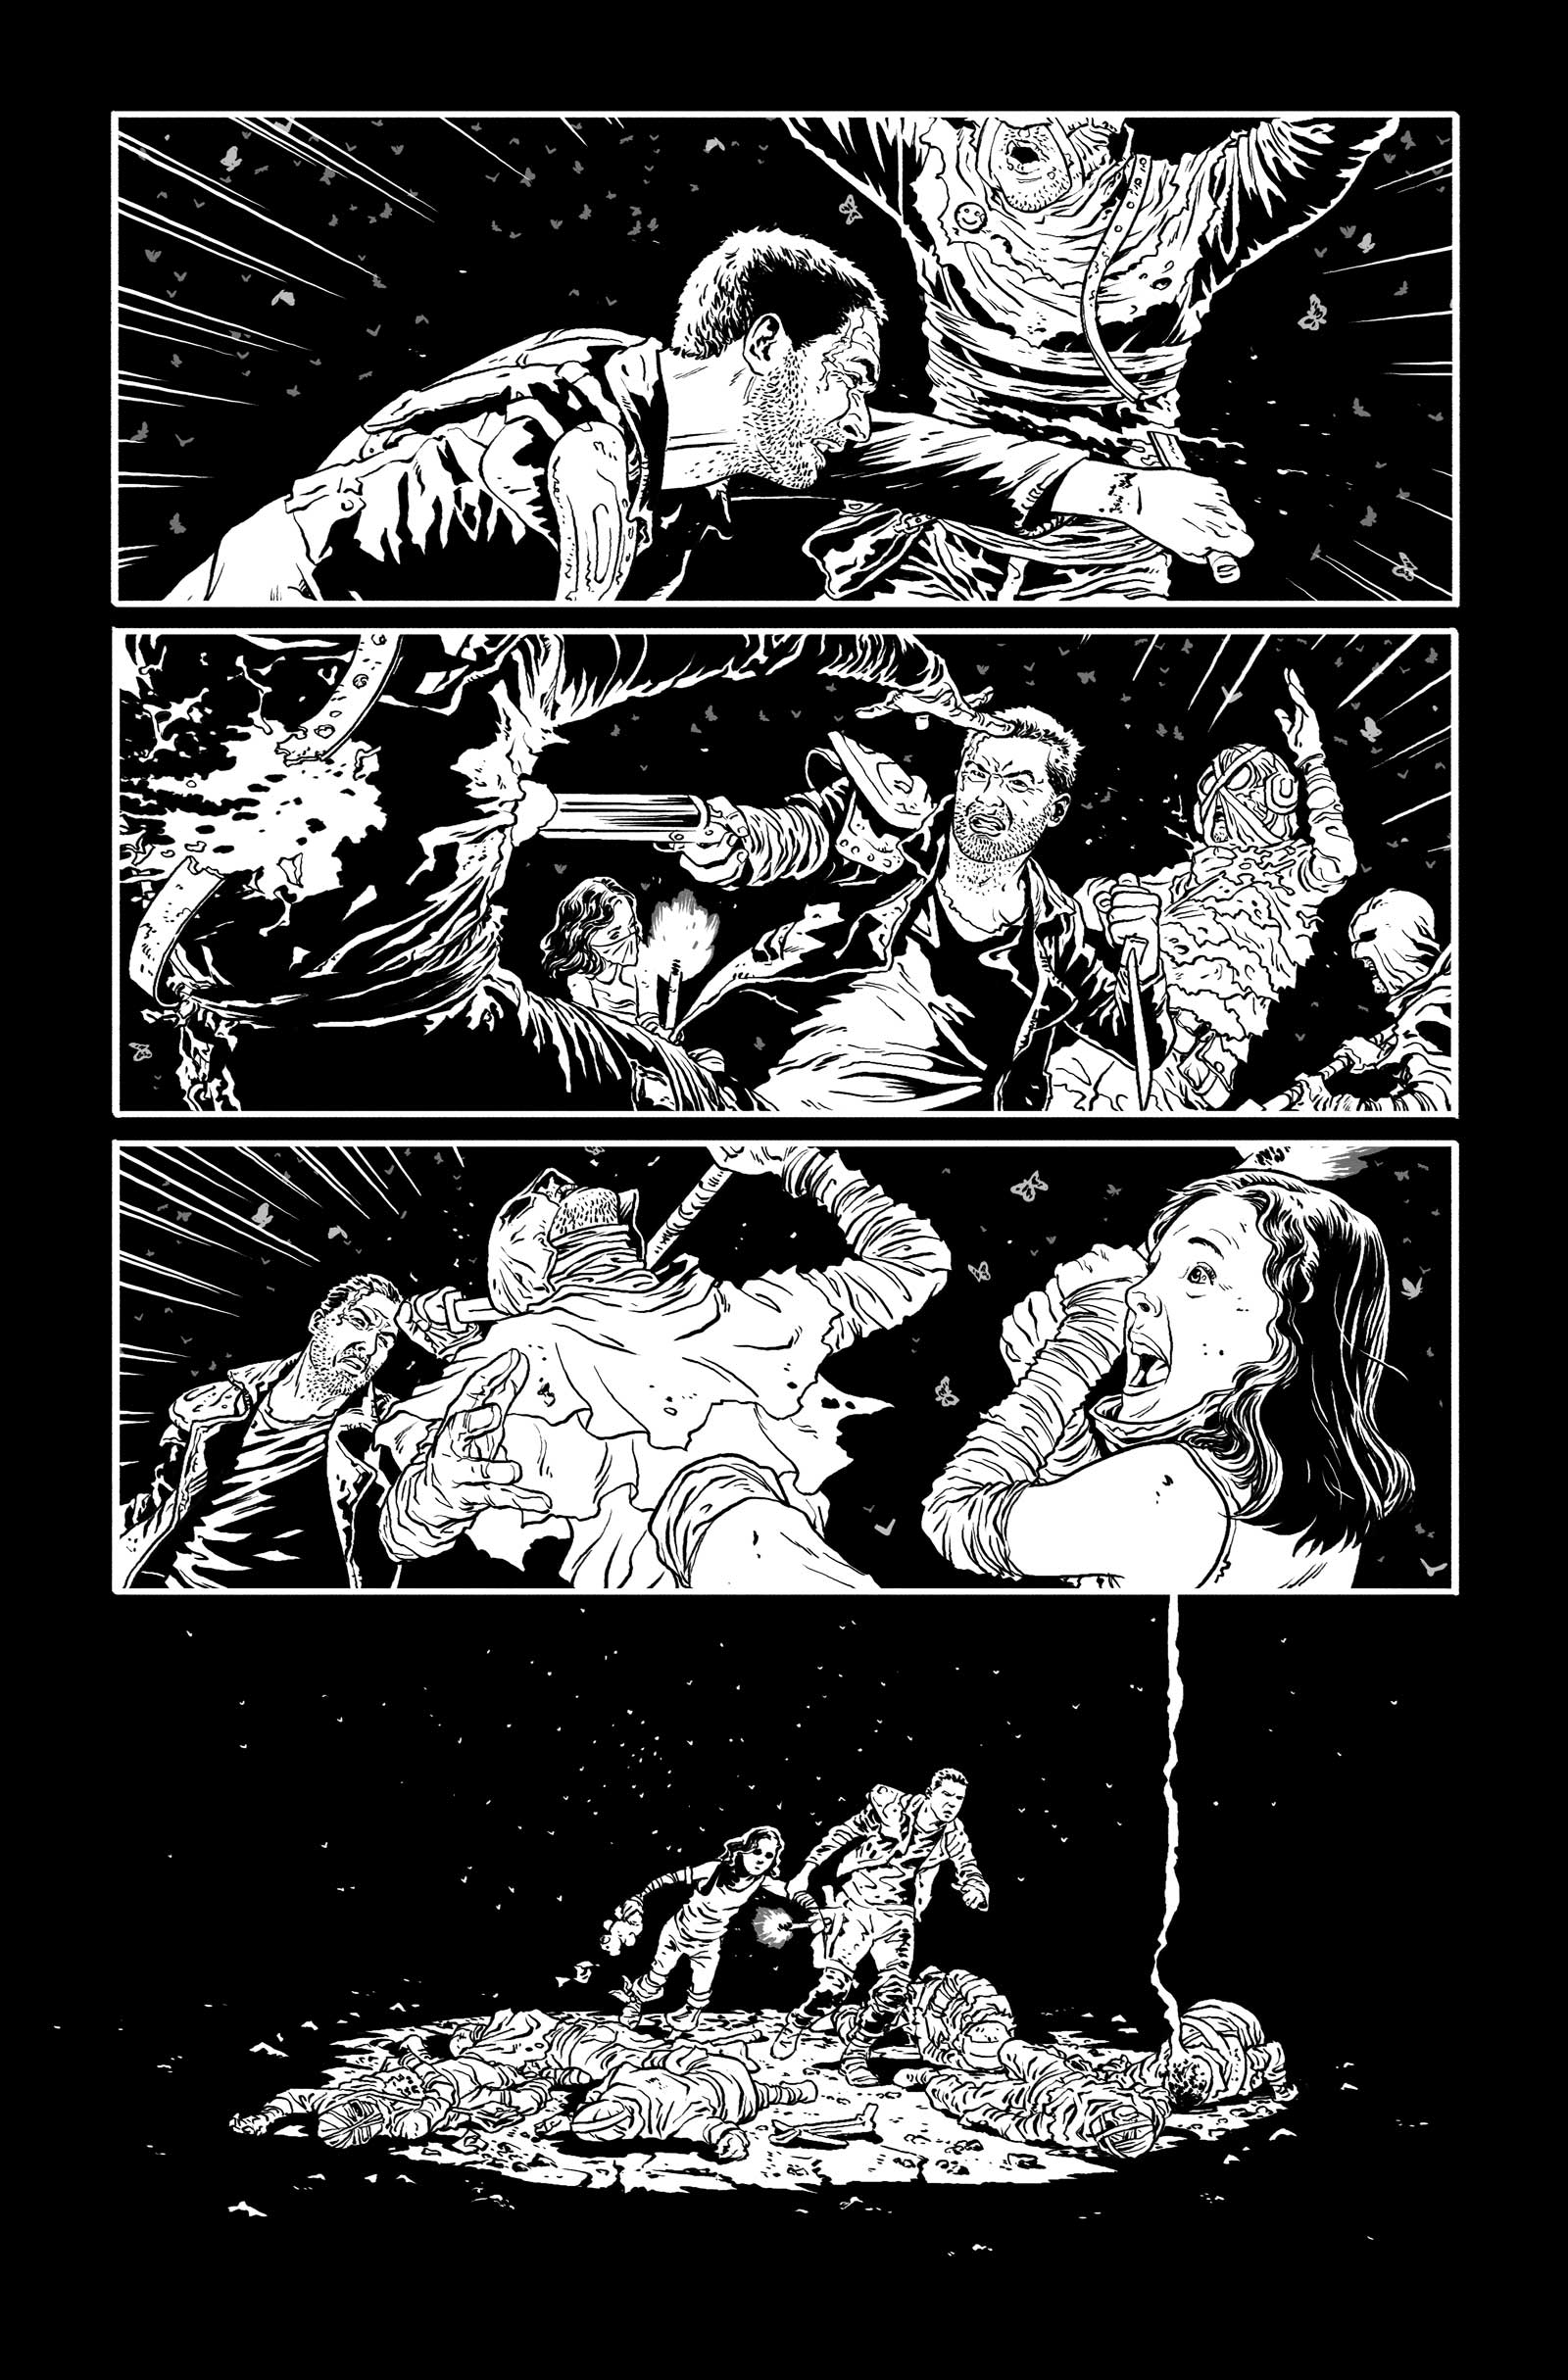 Art for Mad Max#2 by Mark Sexton